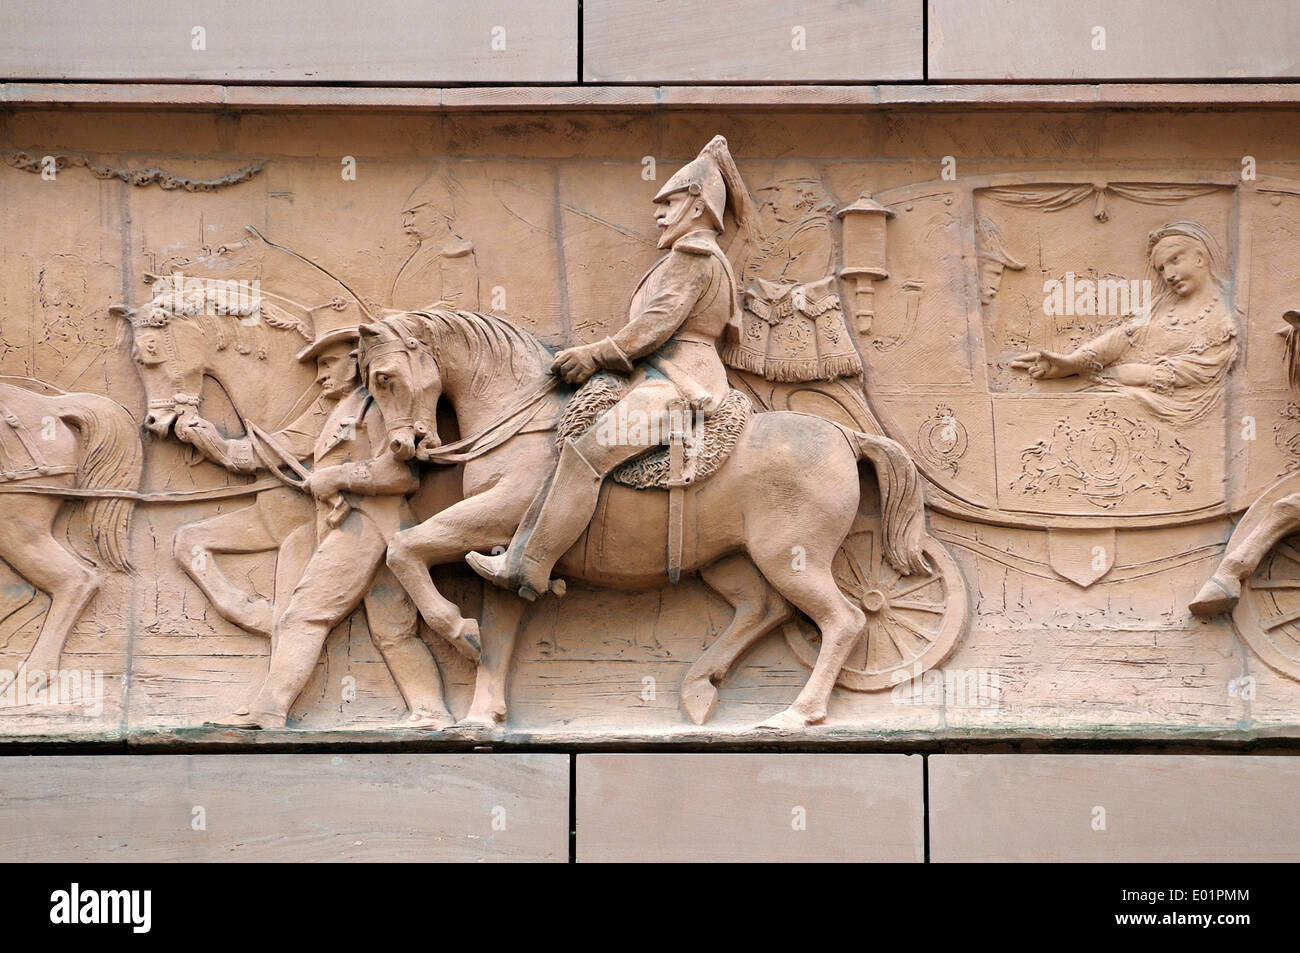 London, England, UK. No1 Poultry (James Stirling, 1994) historical frieze on the facade: royal procession - Queen Victoria - Stock Image